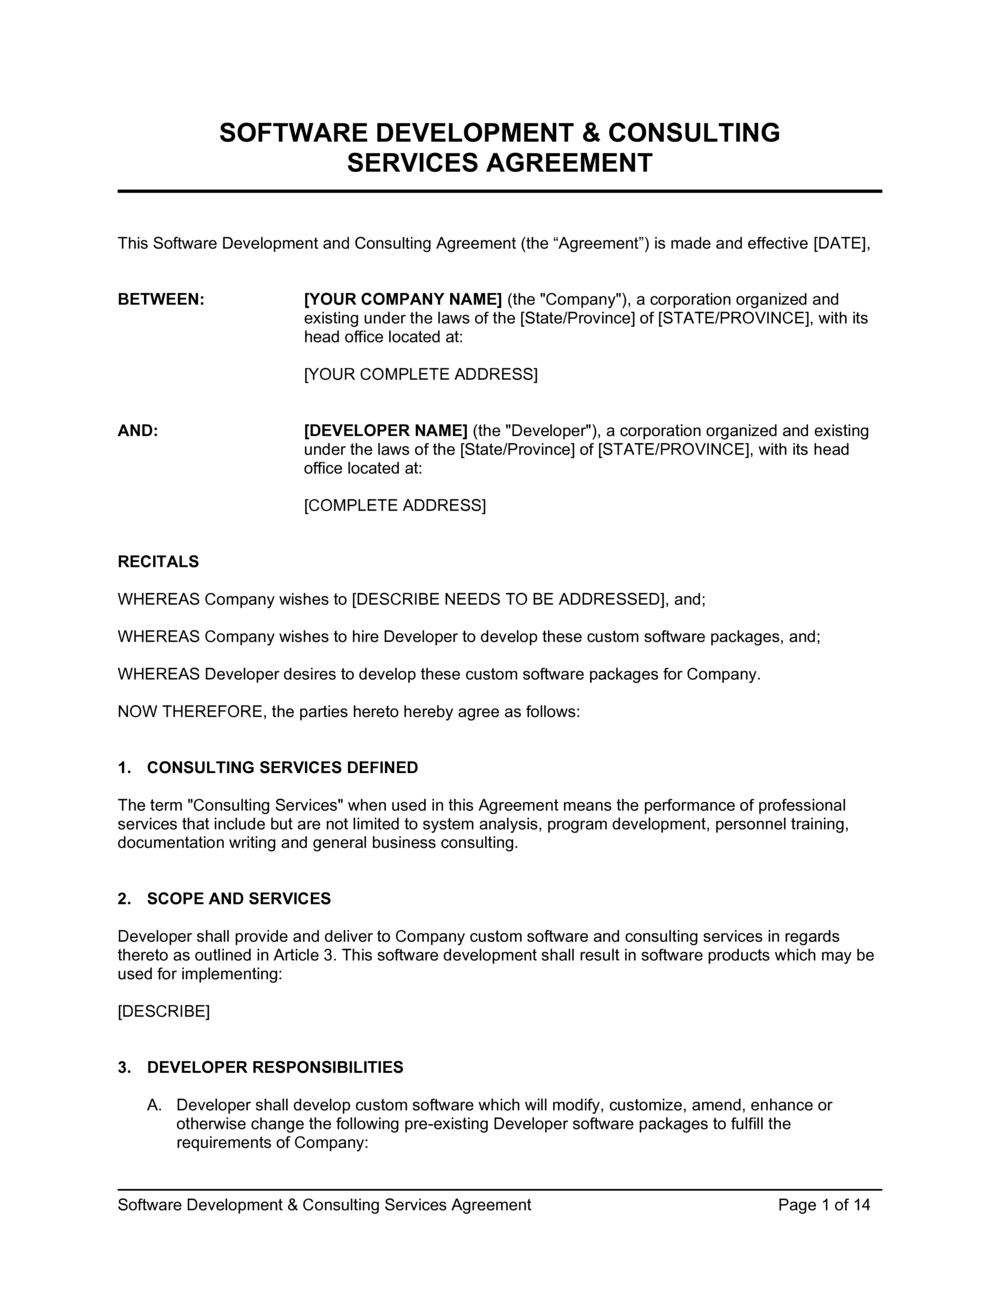 Business-in-a-Box's Software Development and Consulting Services Agreement Template